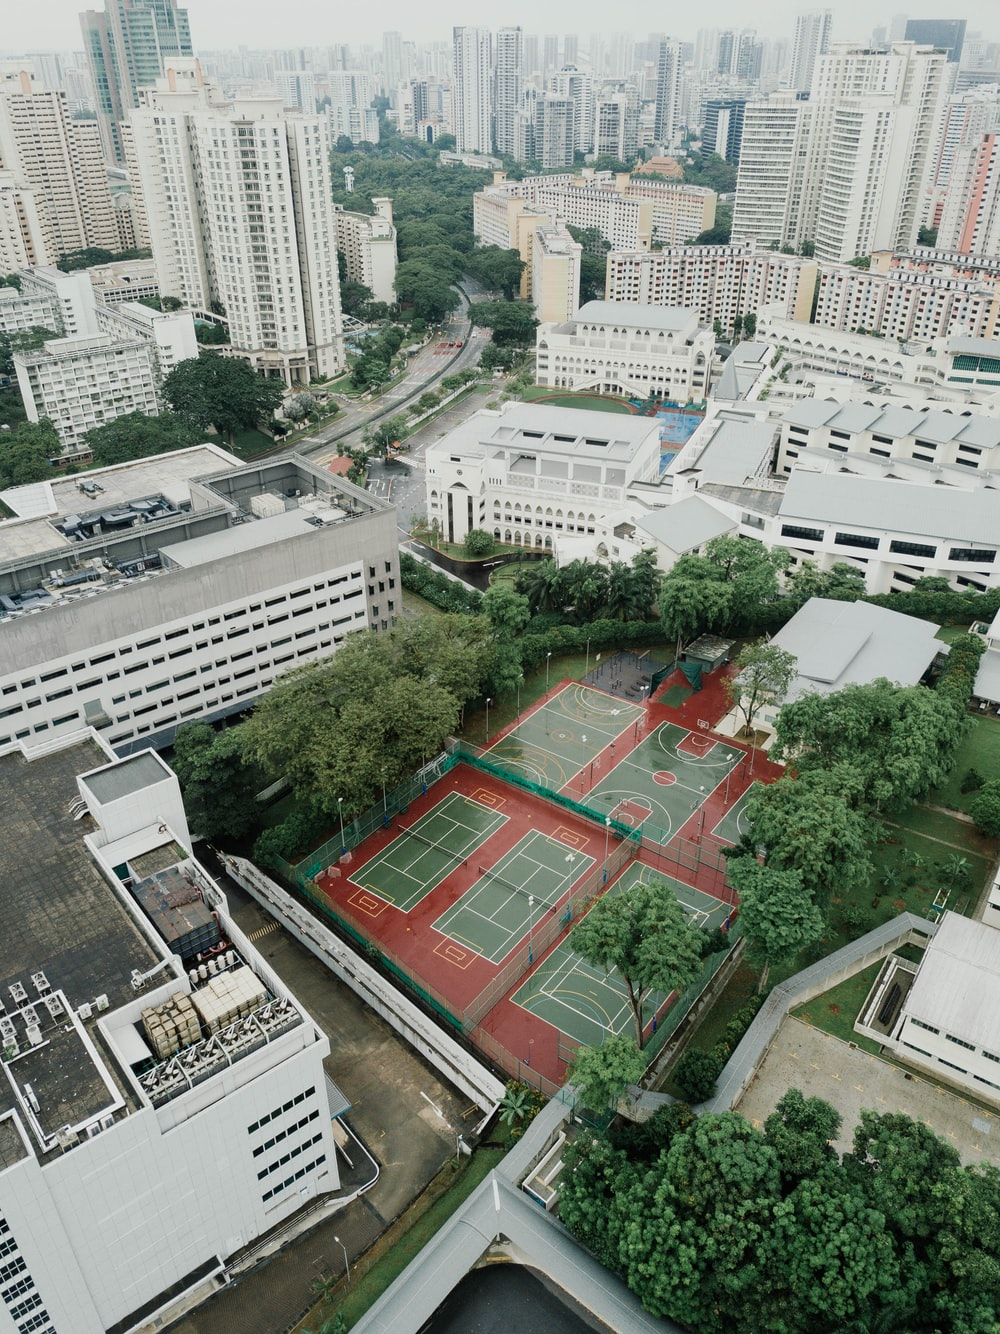 aerial photography of basketball and tennis court in the middle of high-rise buildings